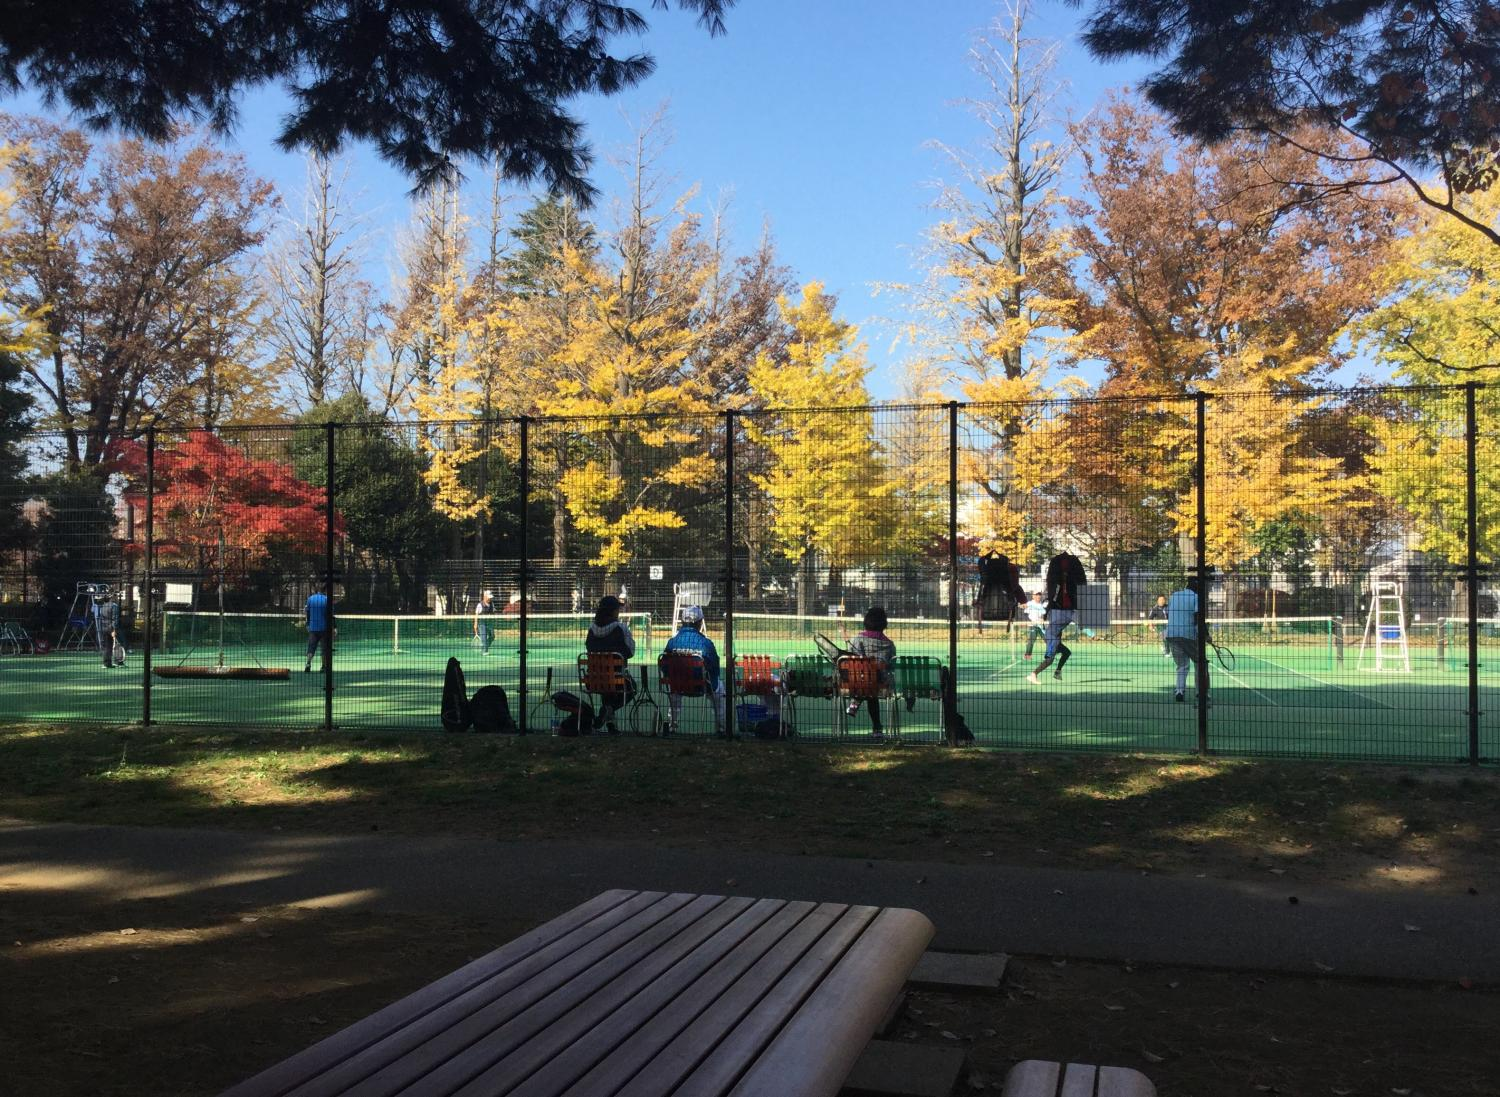 Tennis under colored leaves is the best!